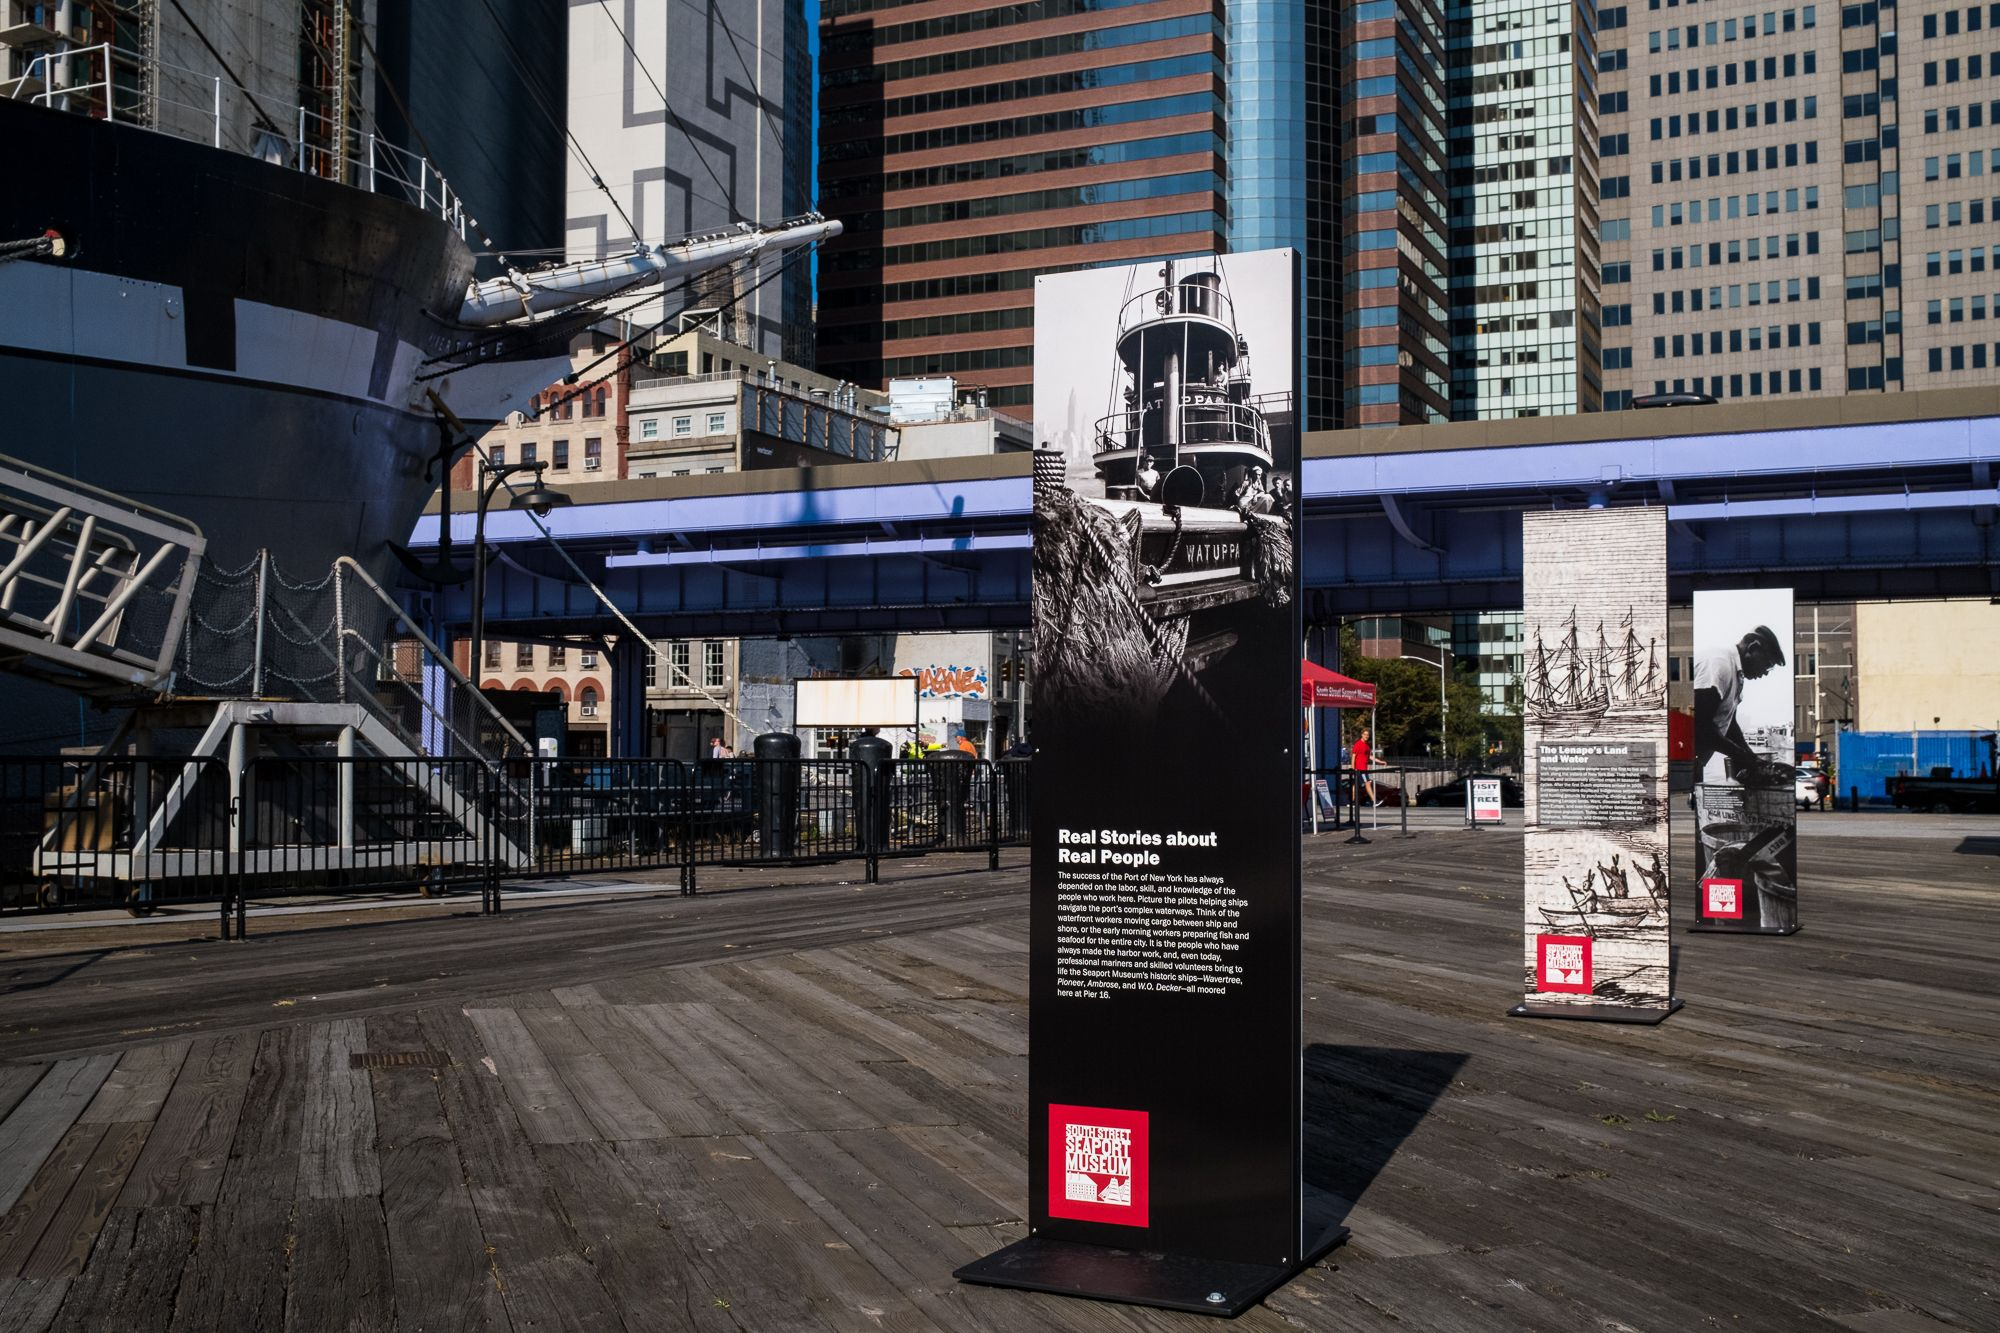 FREE Entry to 1885 Tall Ship Wavertree, FREE Outdoor Exhibition on Pier 16 at South Street Seaport Museum